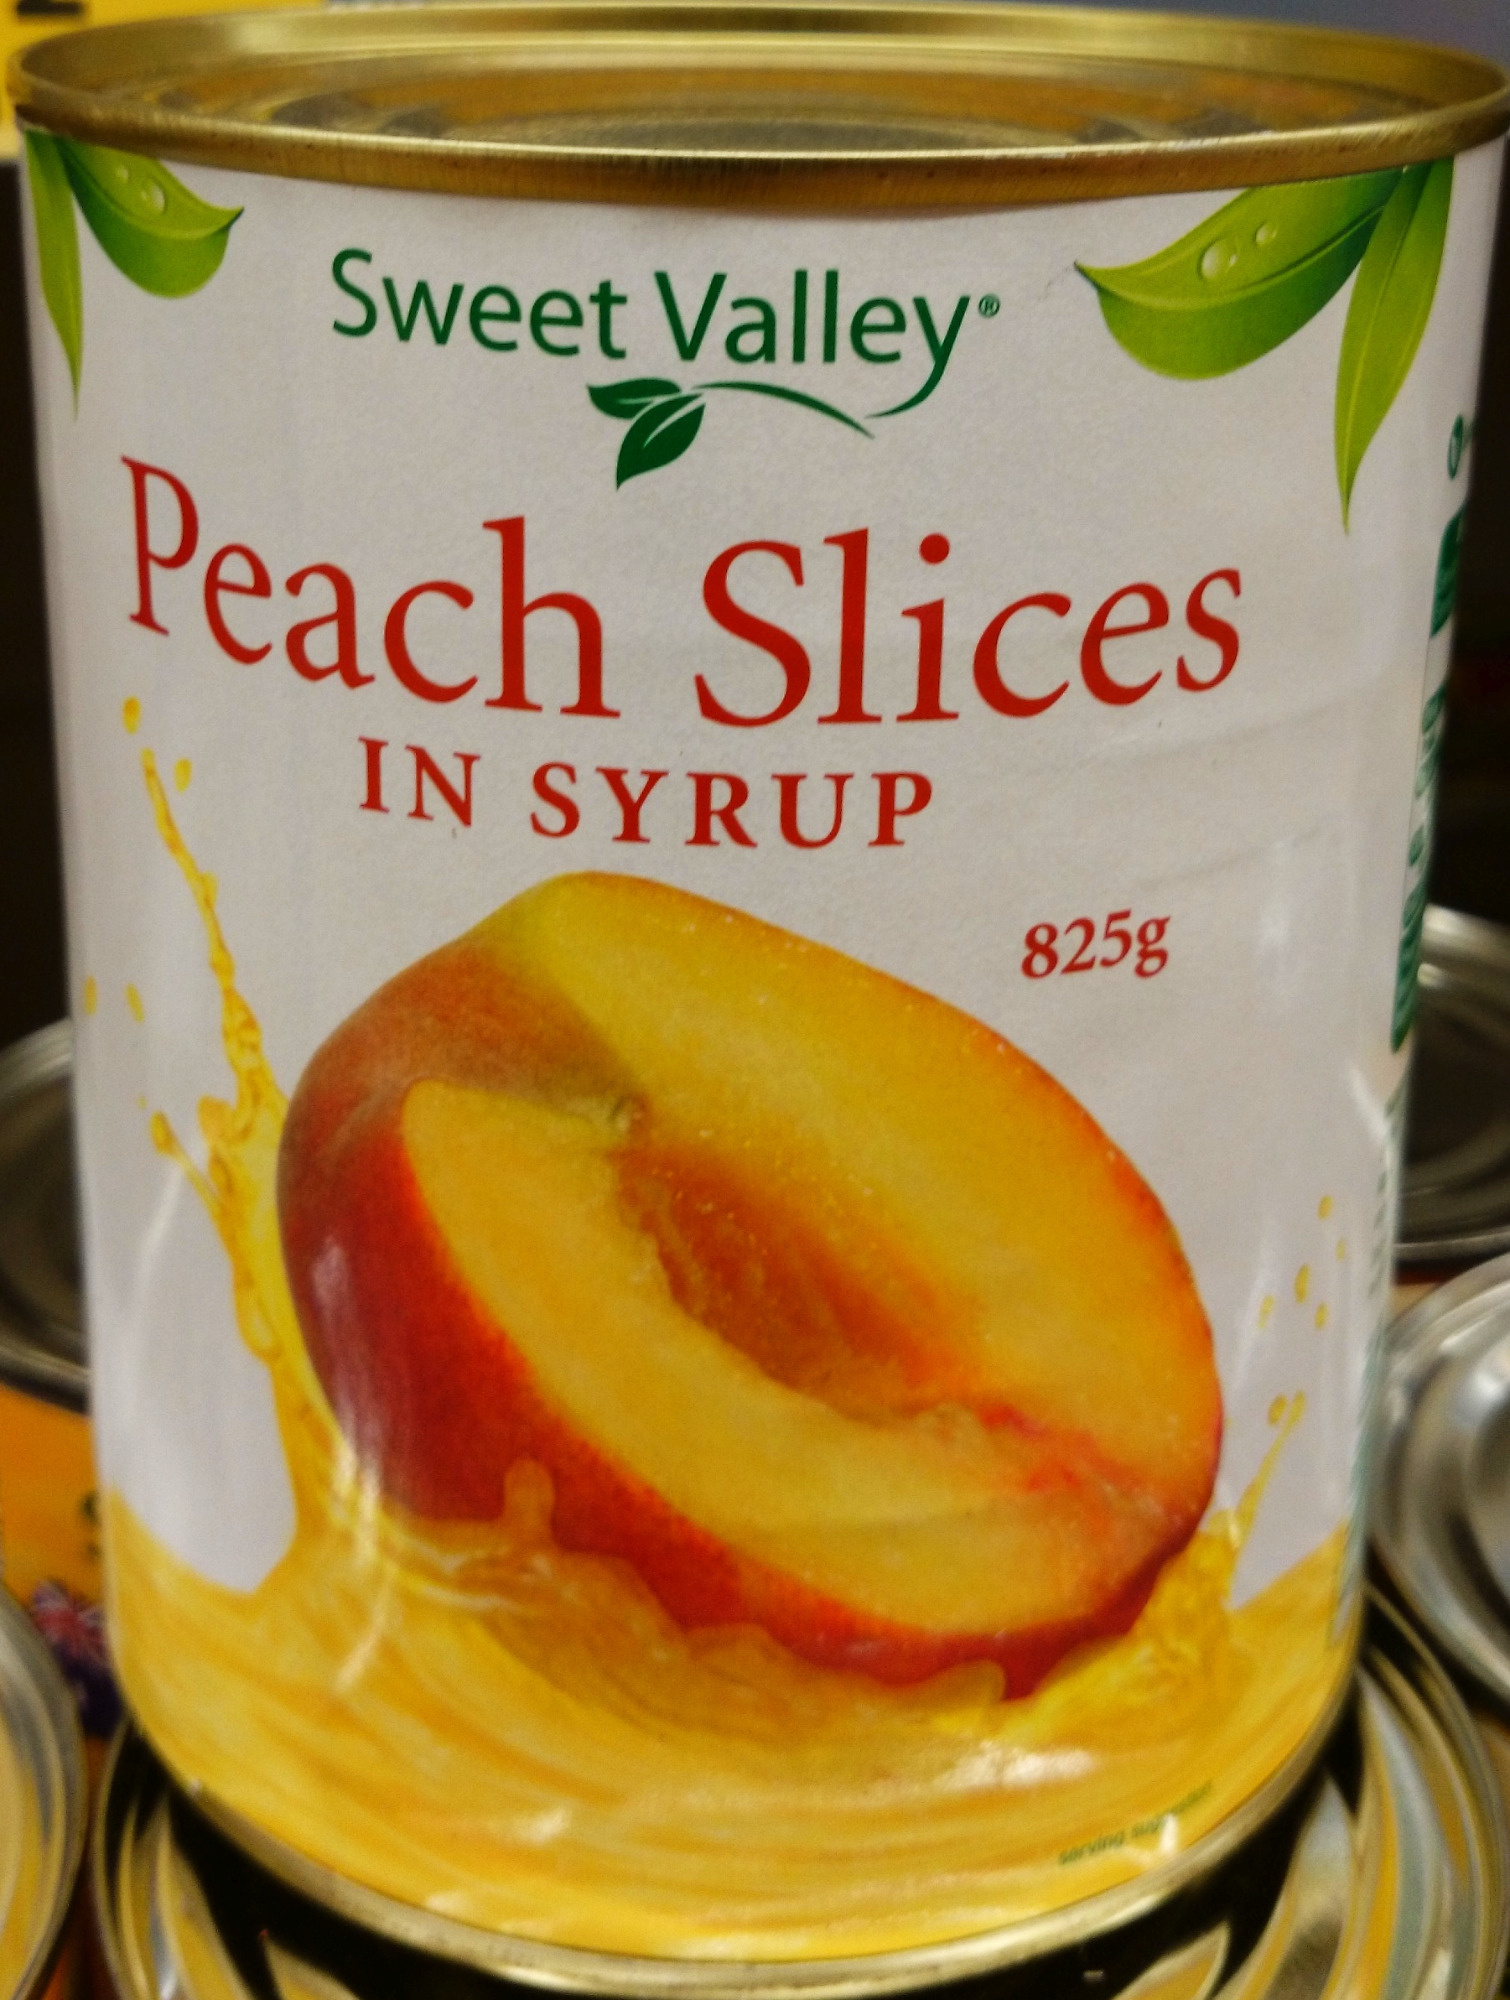 Sweet Valley Peach Slices in Syrup - Produit